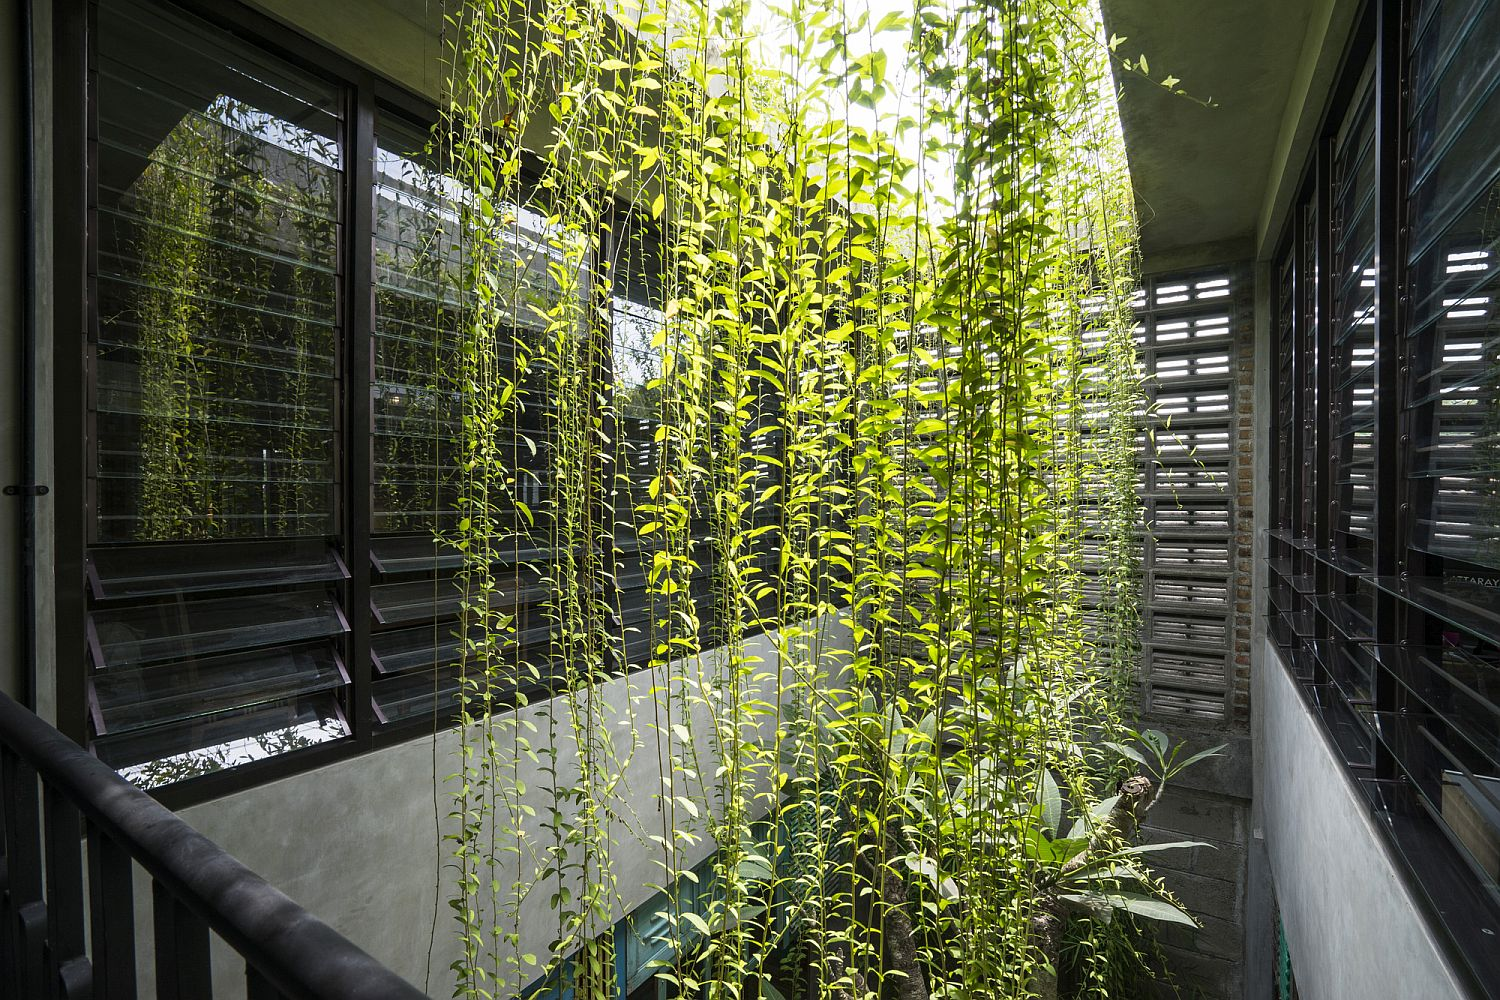 A ventilation well with plenty of greenery